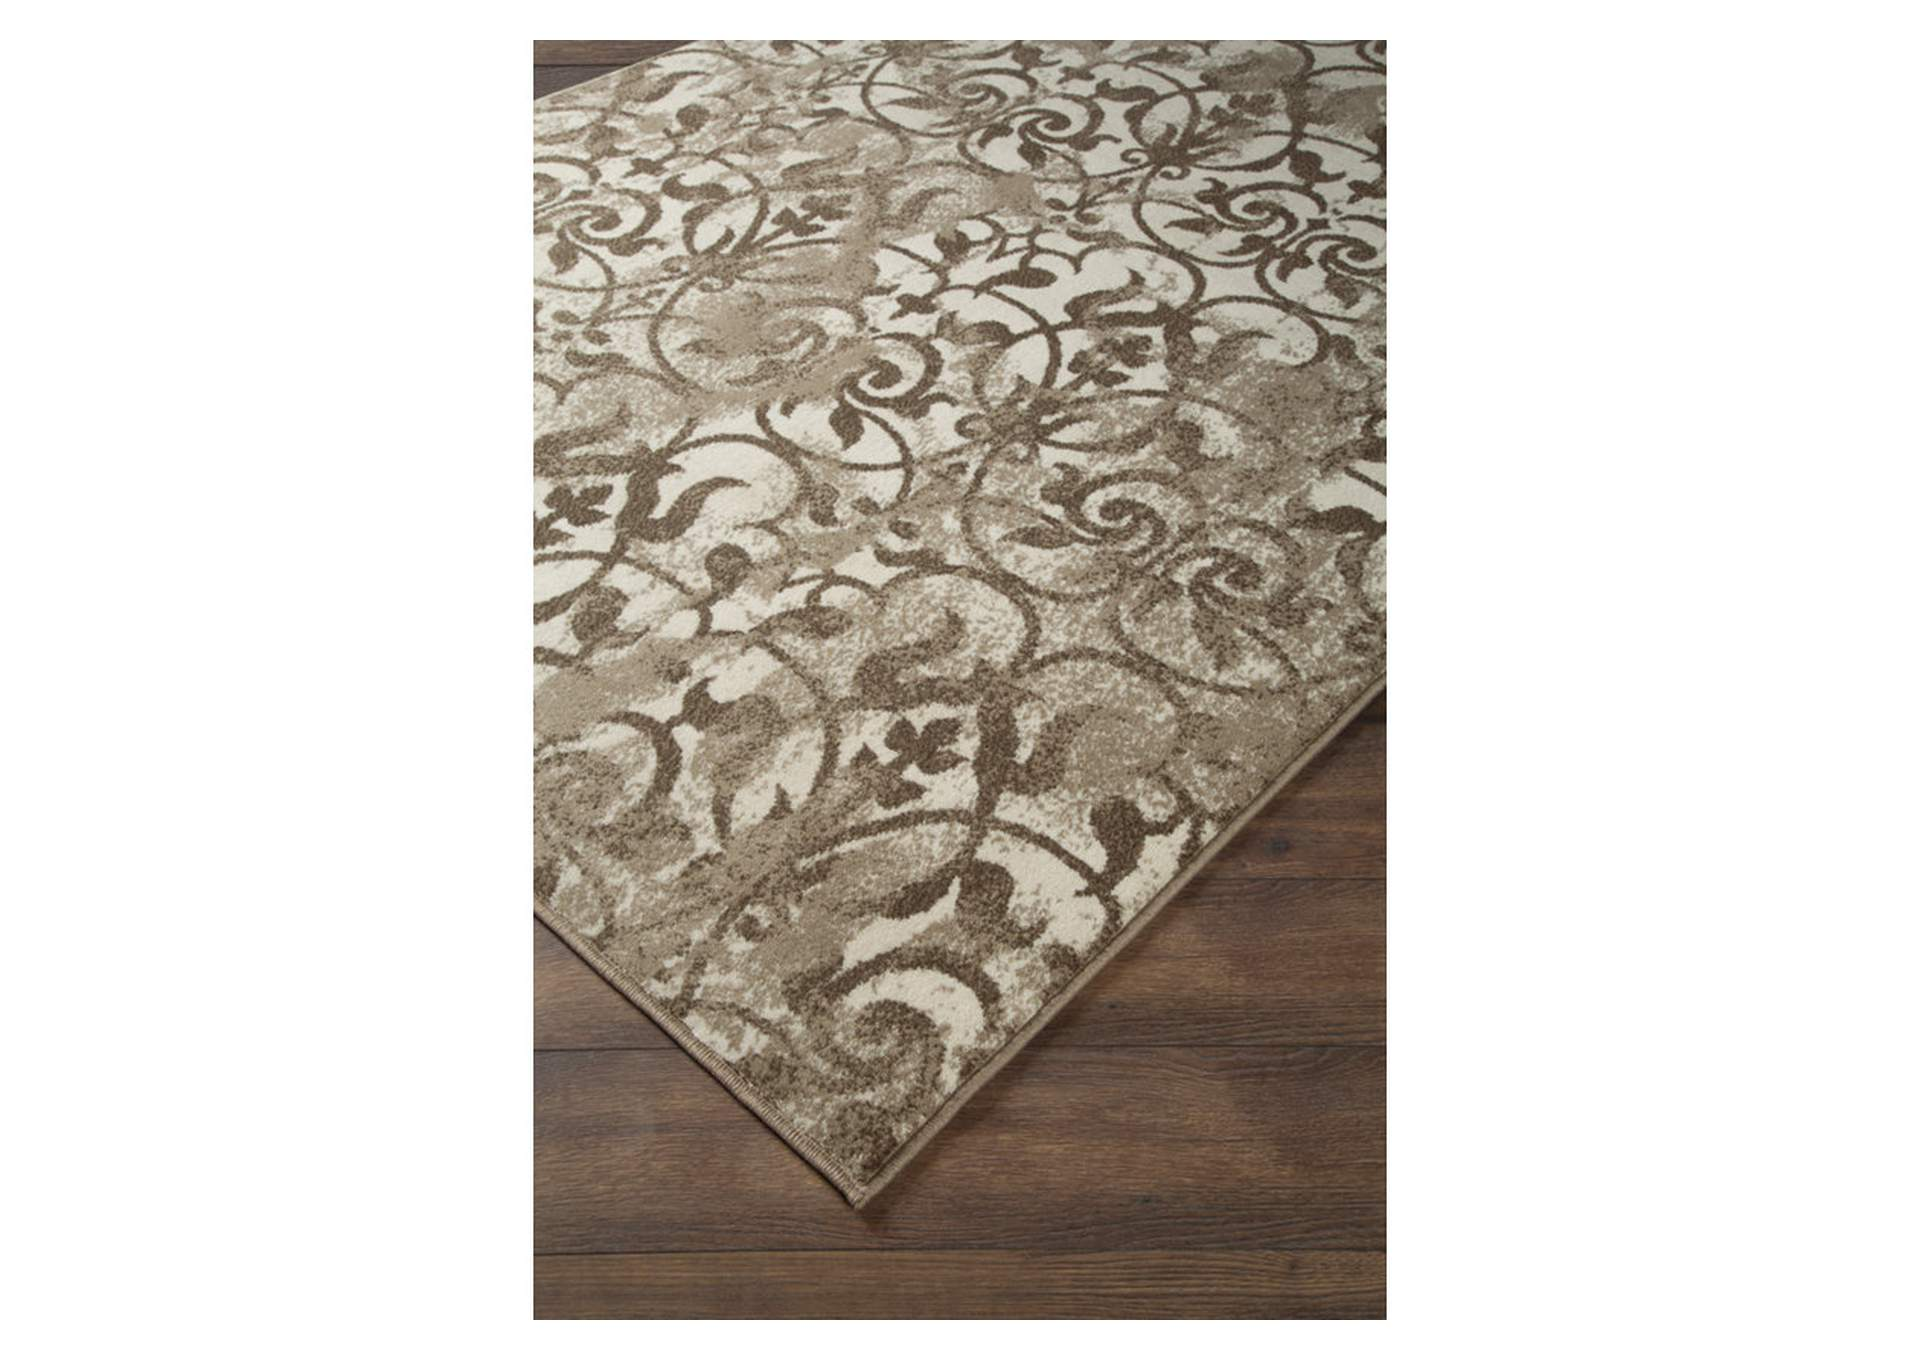 Cadrian 5' x 7' Rug,Signature Design By Ashley